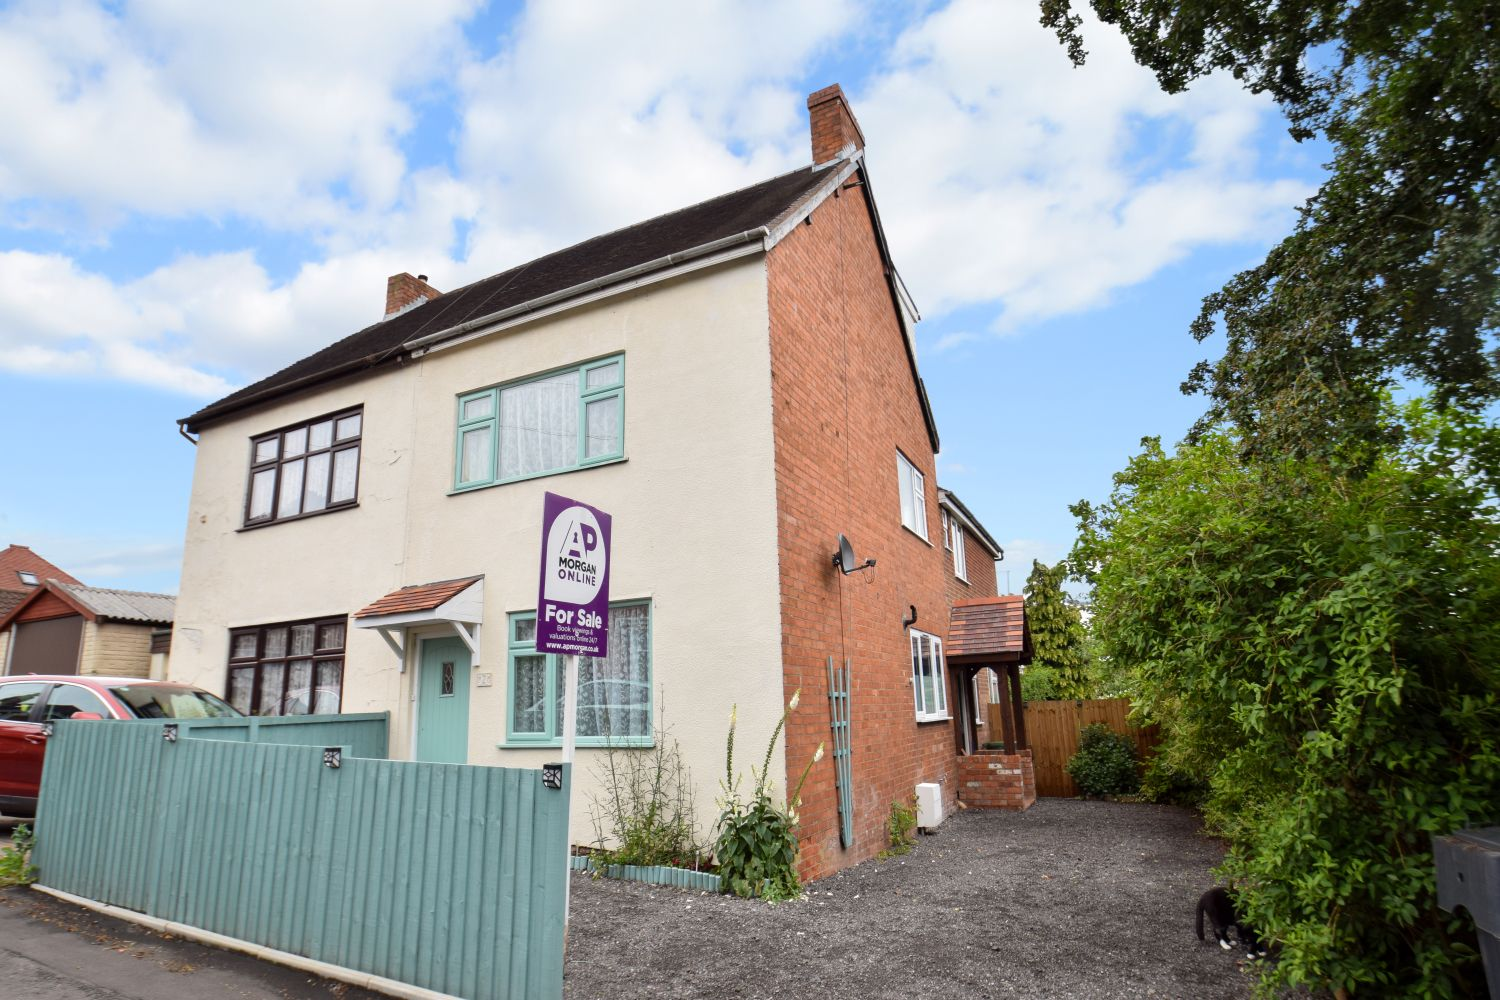 4 bed semi-detached for sale in Upland Grove, Bromsgrove, B61 1